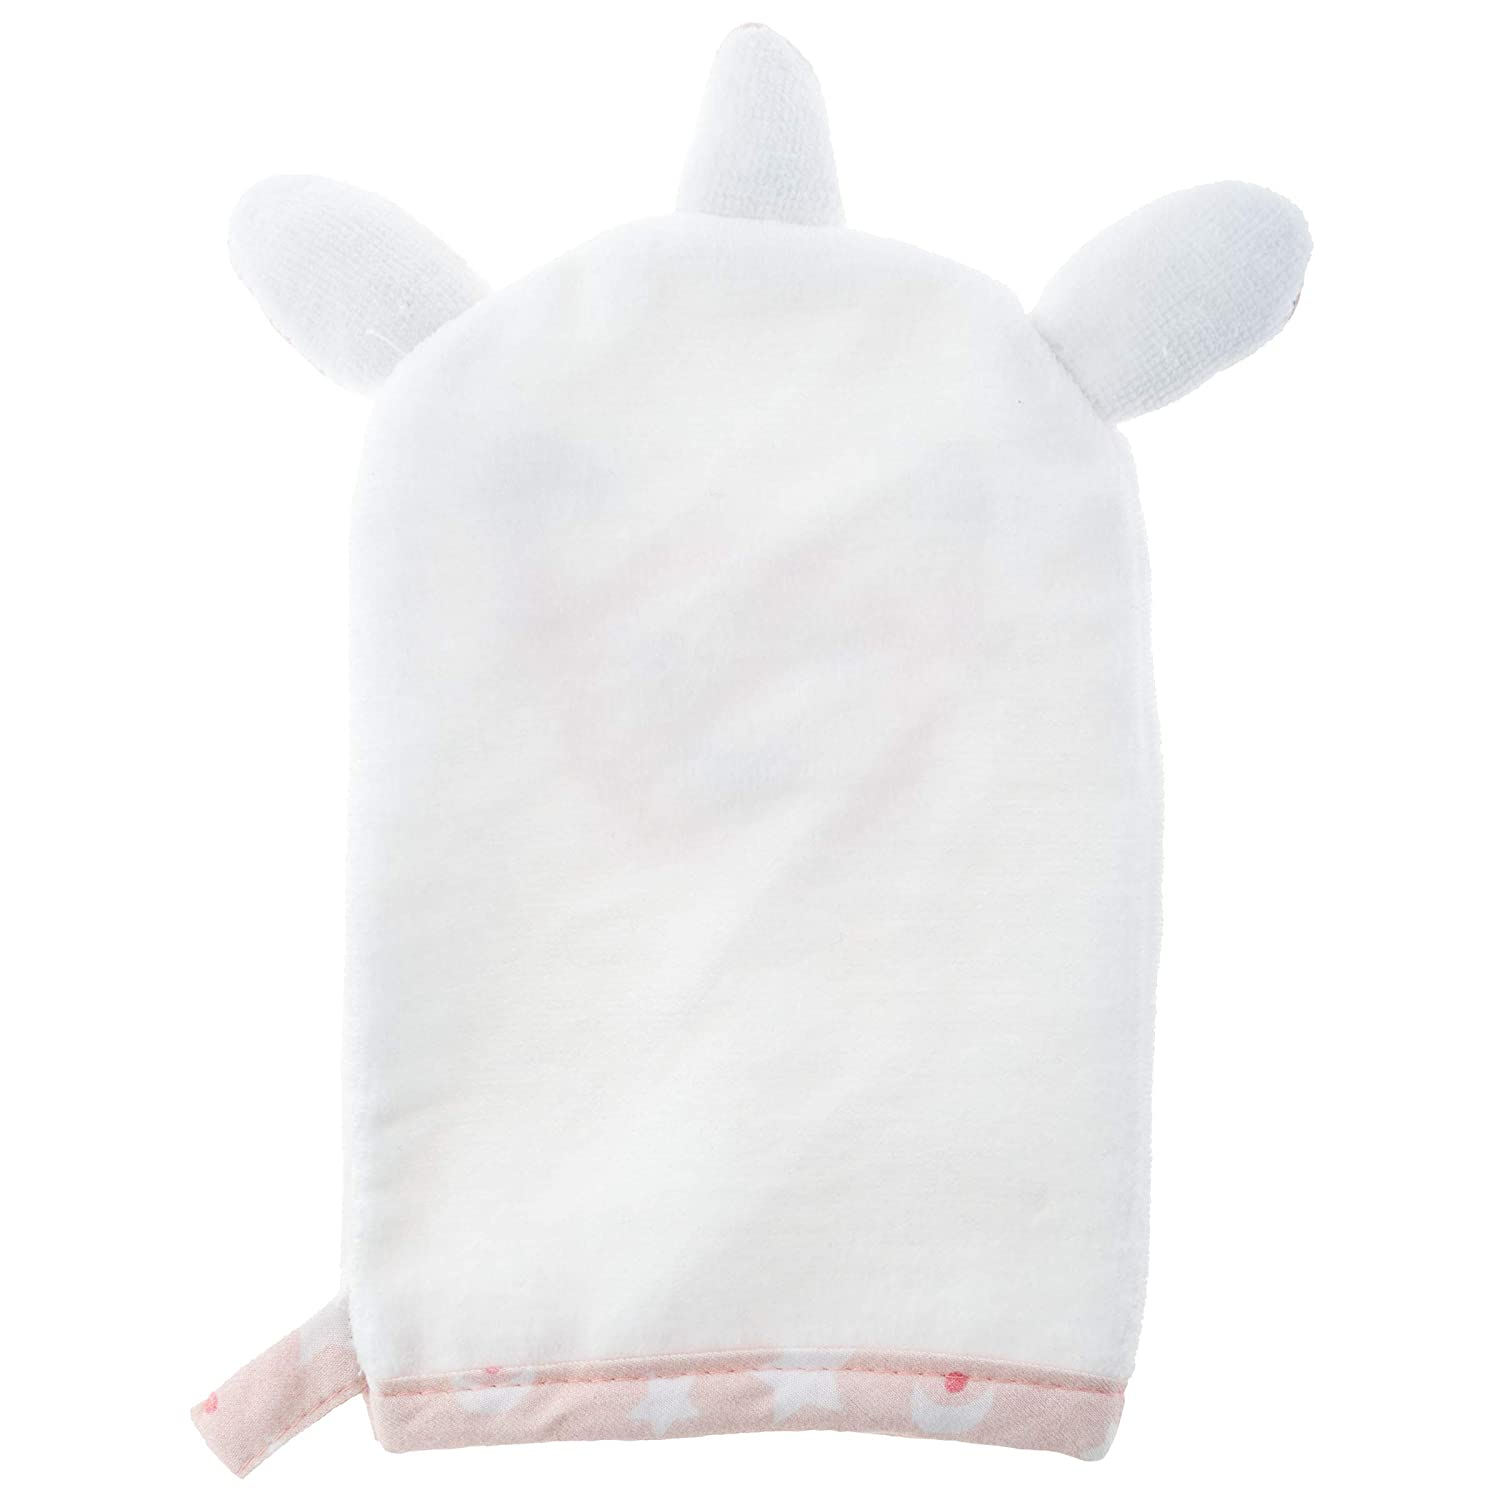 Stephen Joseph Bath Mitts Unicorn